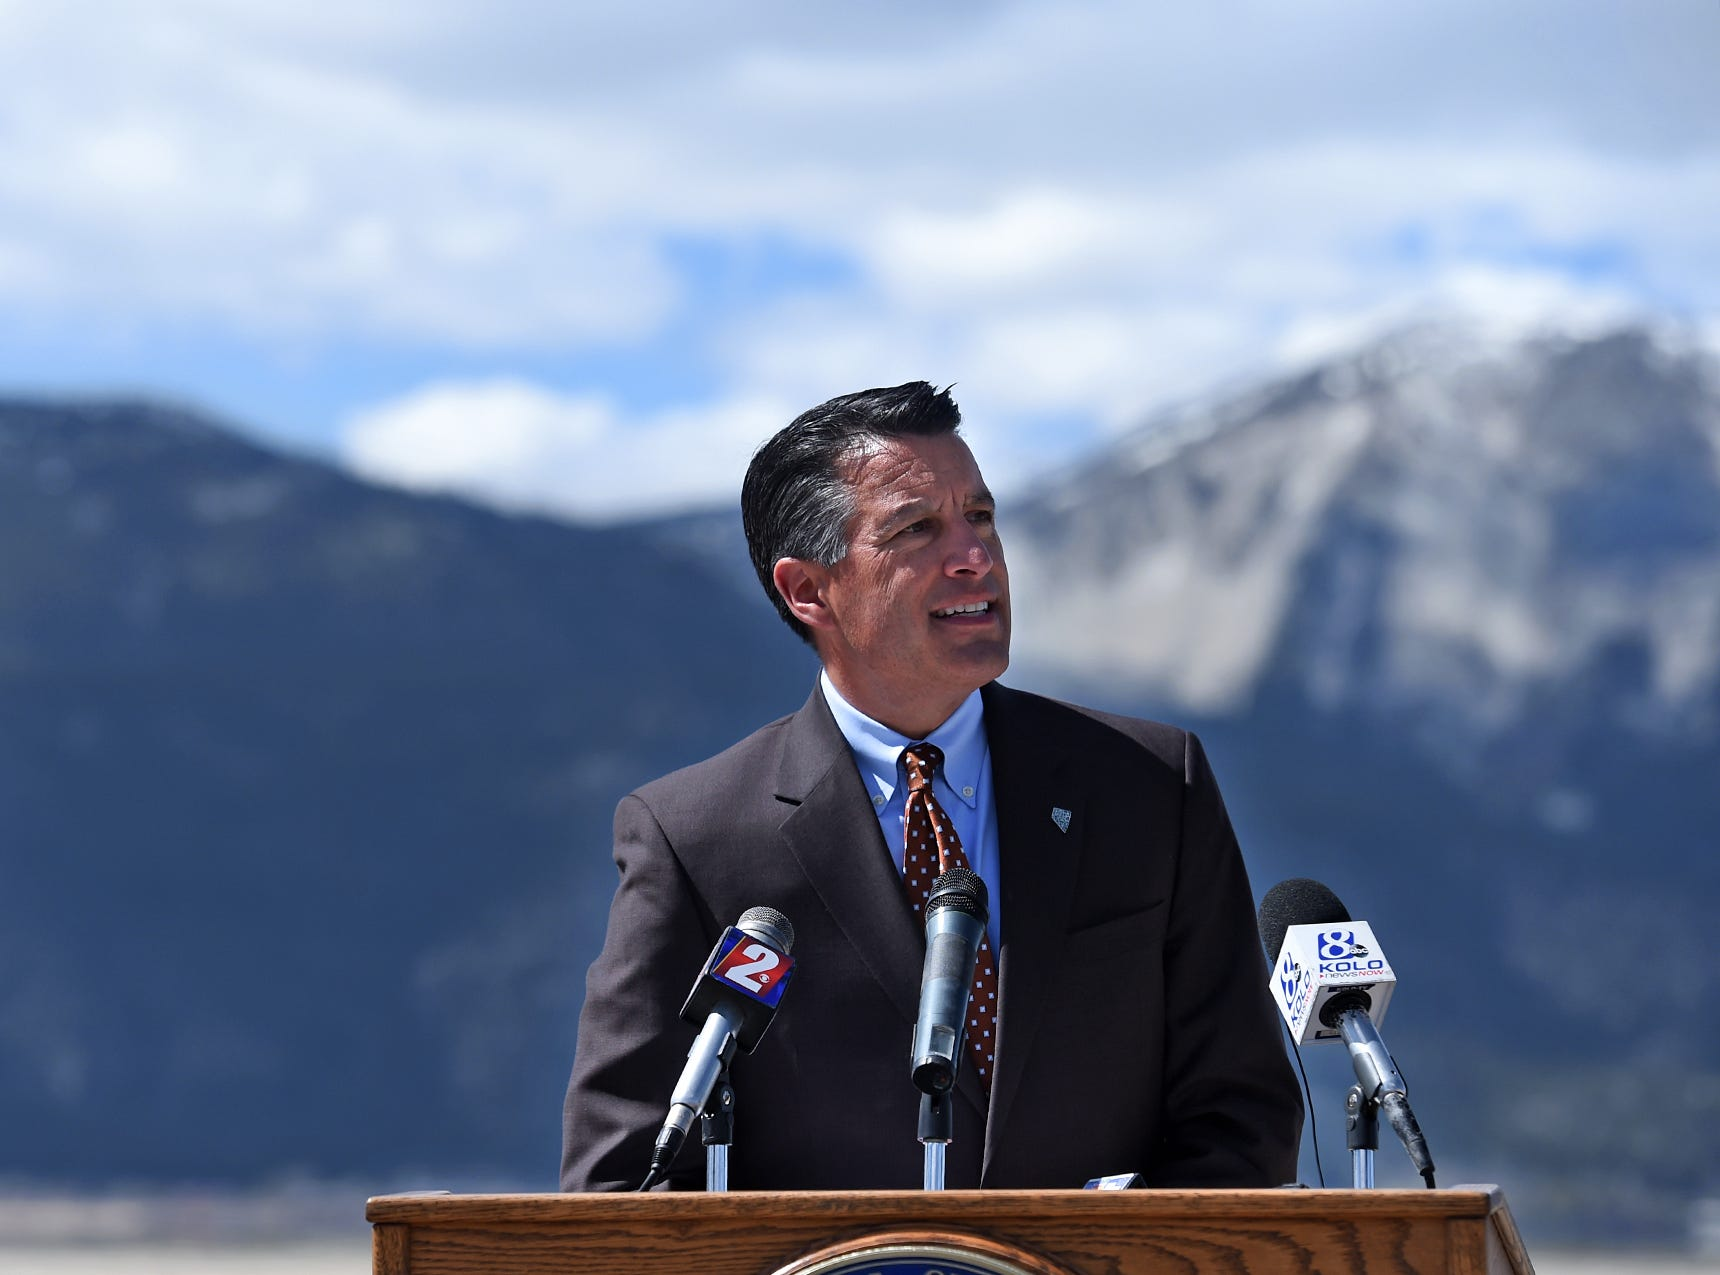 Governor Brian Sandoval speaks before signing an Executive Order to create a Nevada drought forum during a press conferece at Washoe State Park on Wednesday April 8, 2015.